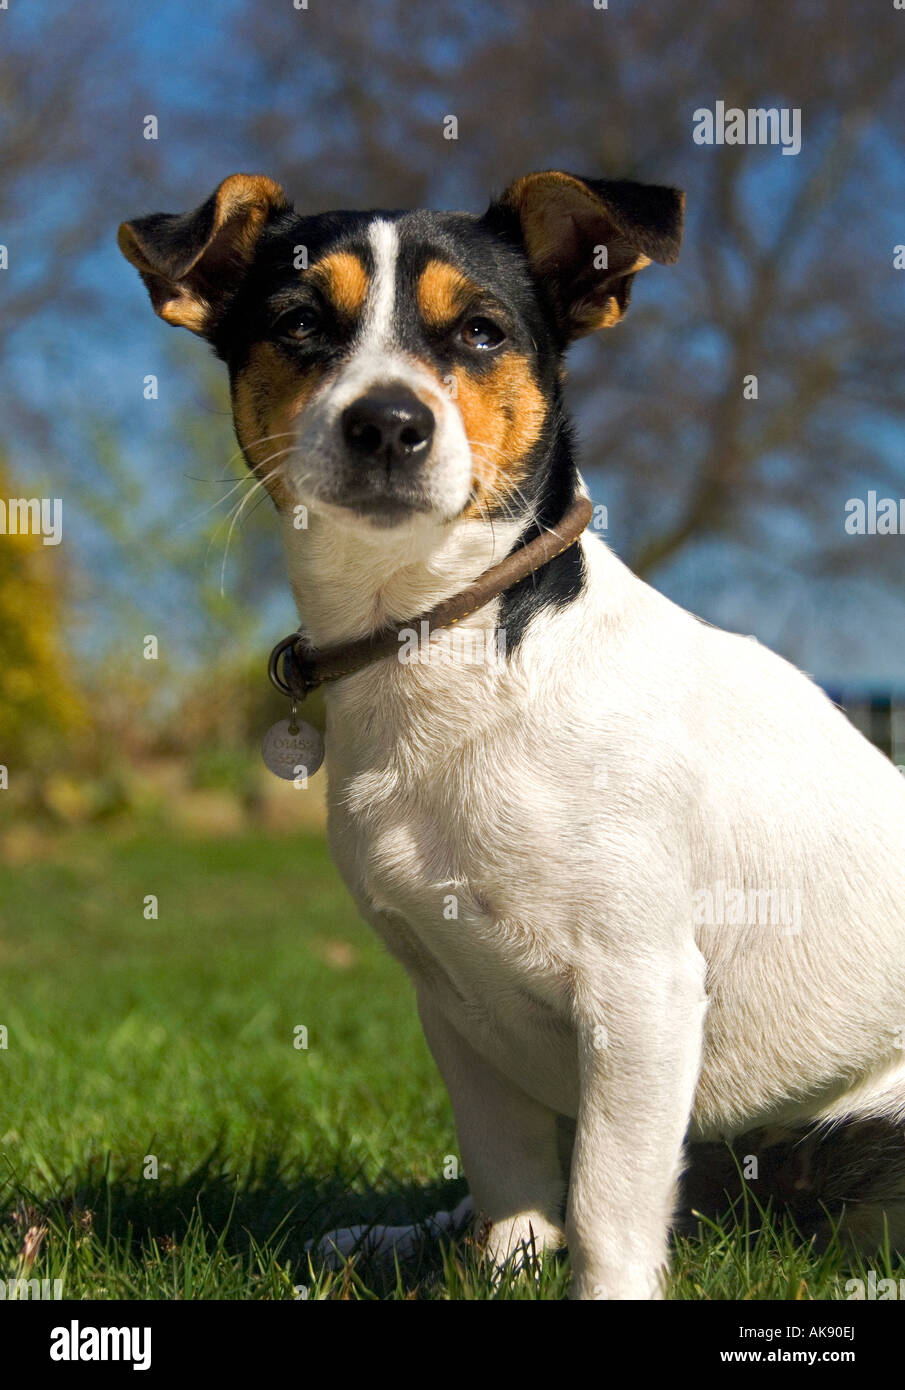 Jack Russel Dog Sitting Alert on a Grass Lawn - Stock Image